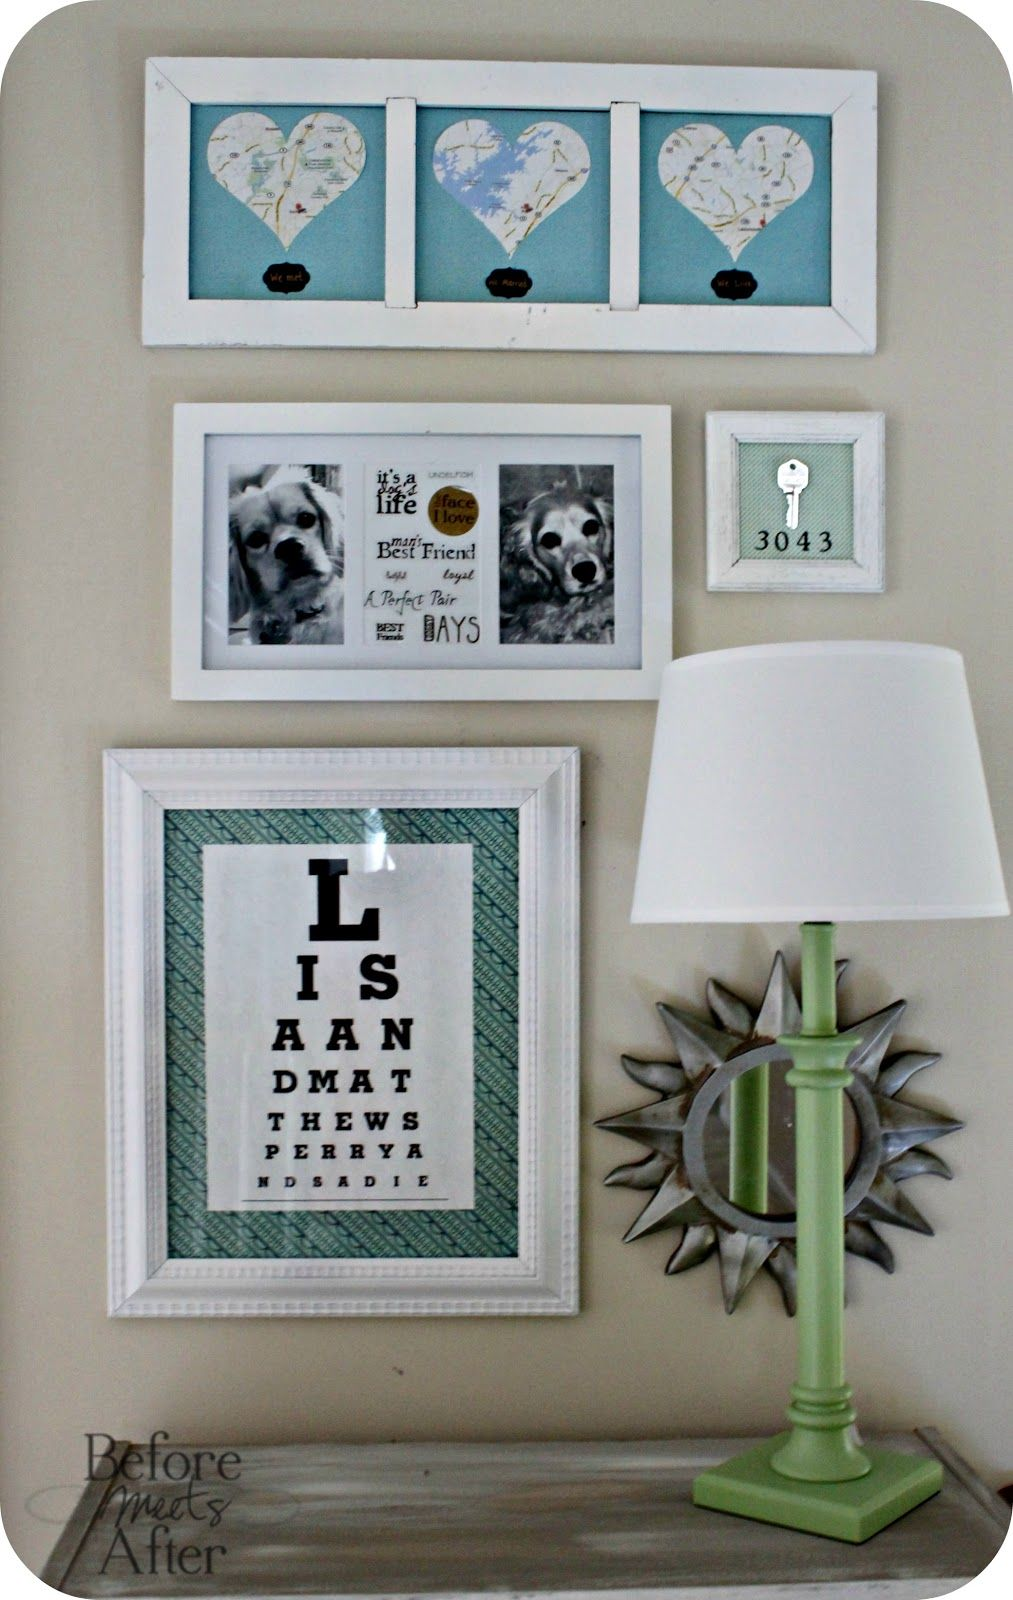 Objects With Meaning Grouping  Like The Framed House Key Especially!